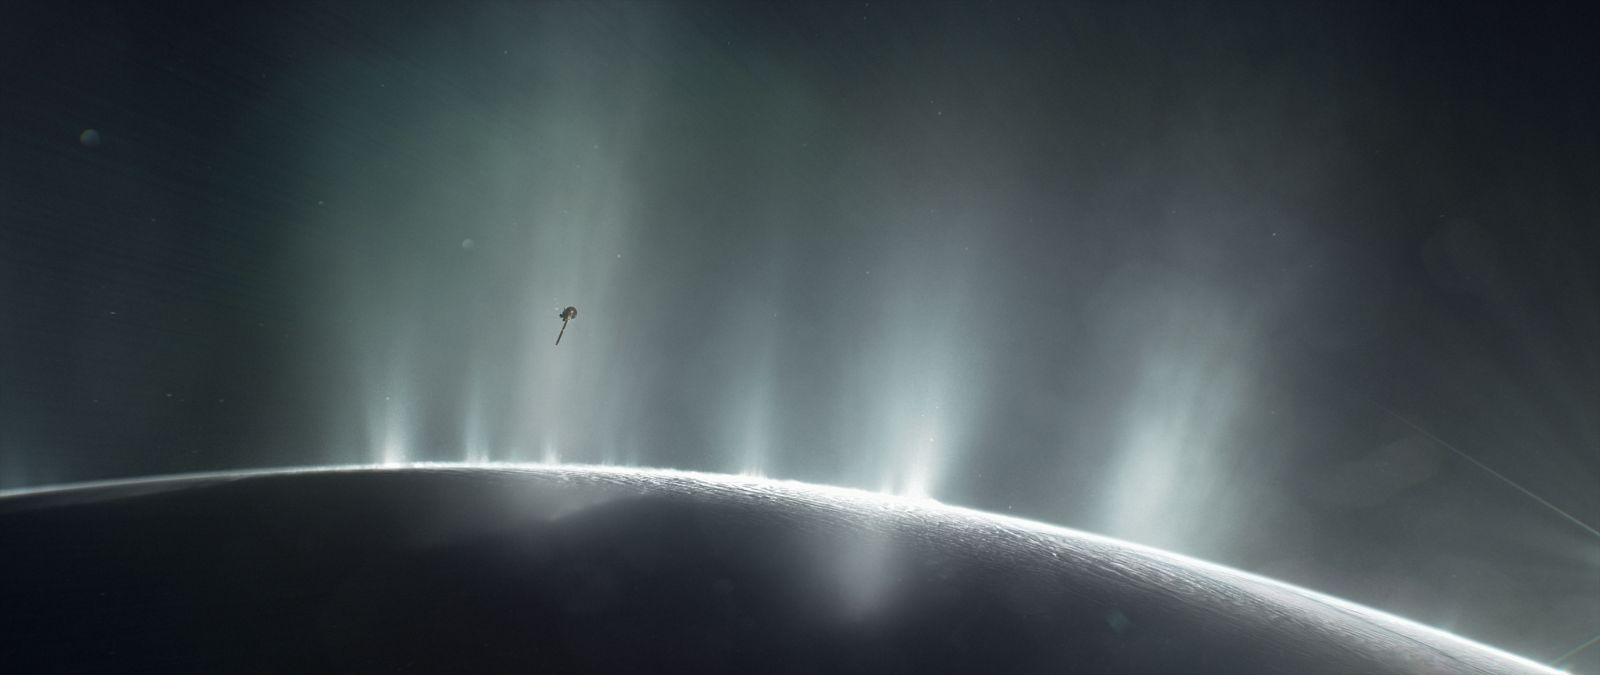 Cassini flying through Enceladus' plumes